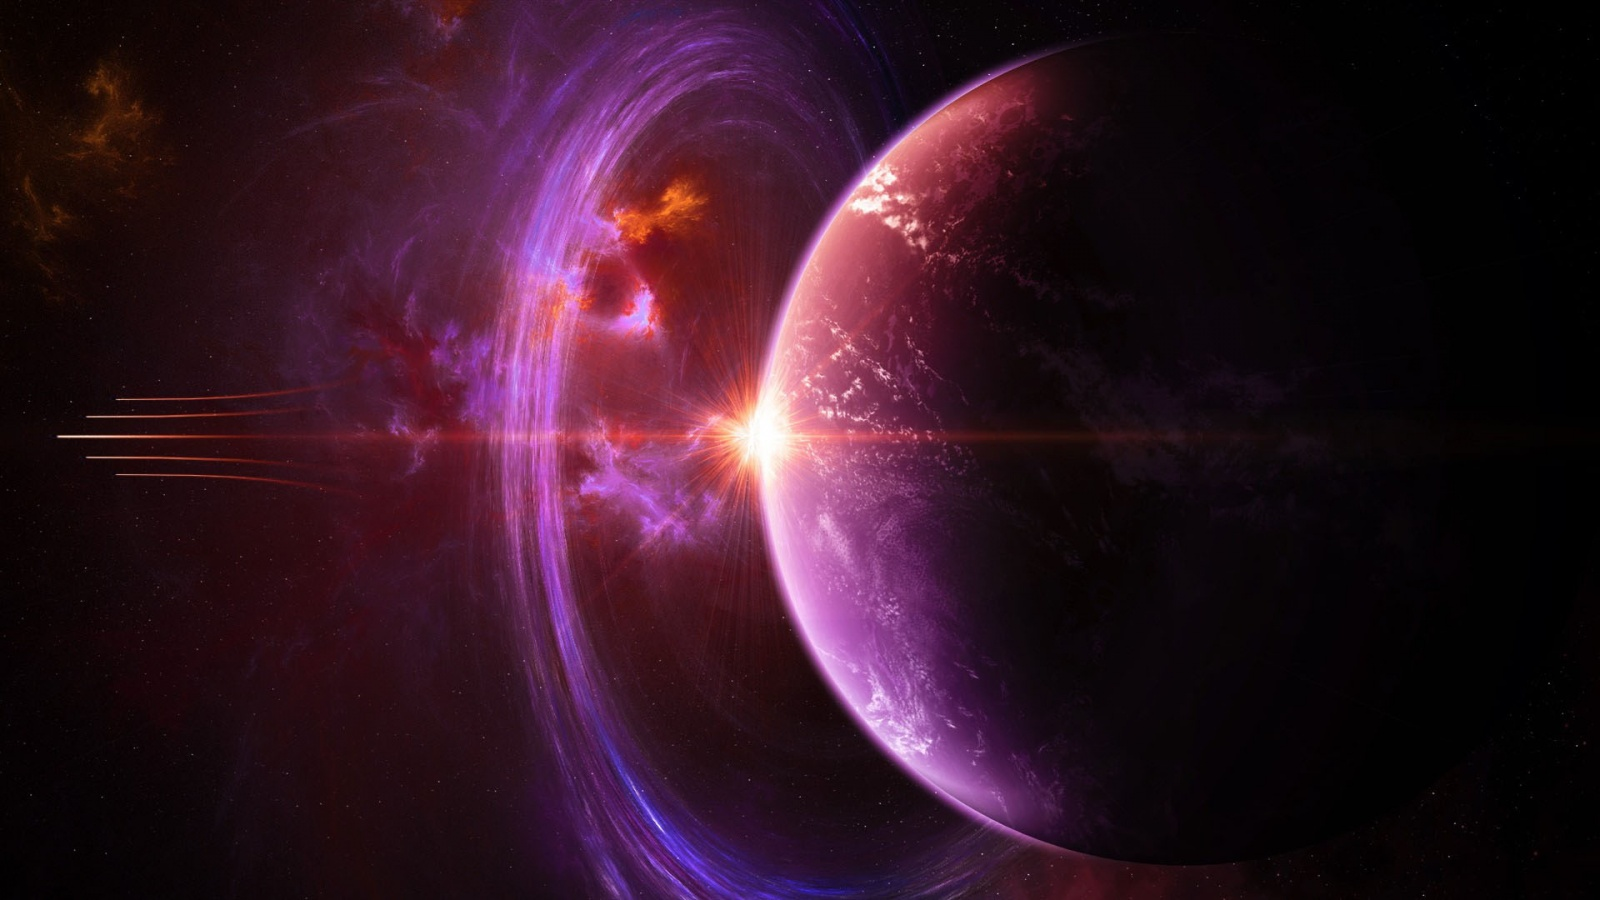 Space planet universe wallpapers 1600x900 274468 - Space wallpaper 1600x900 ...